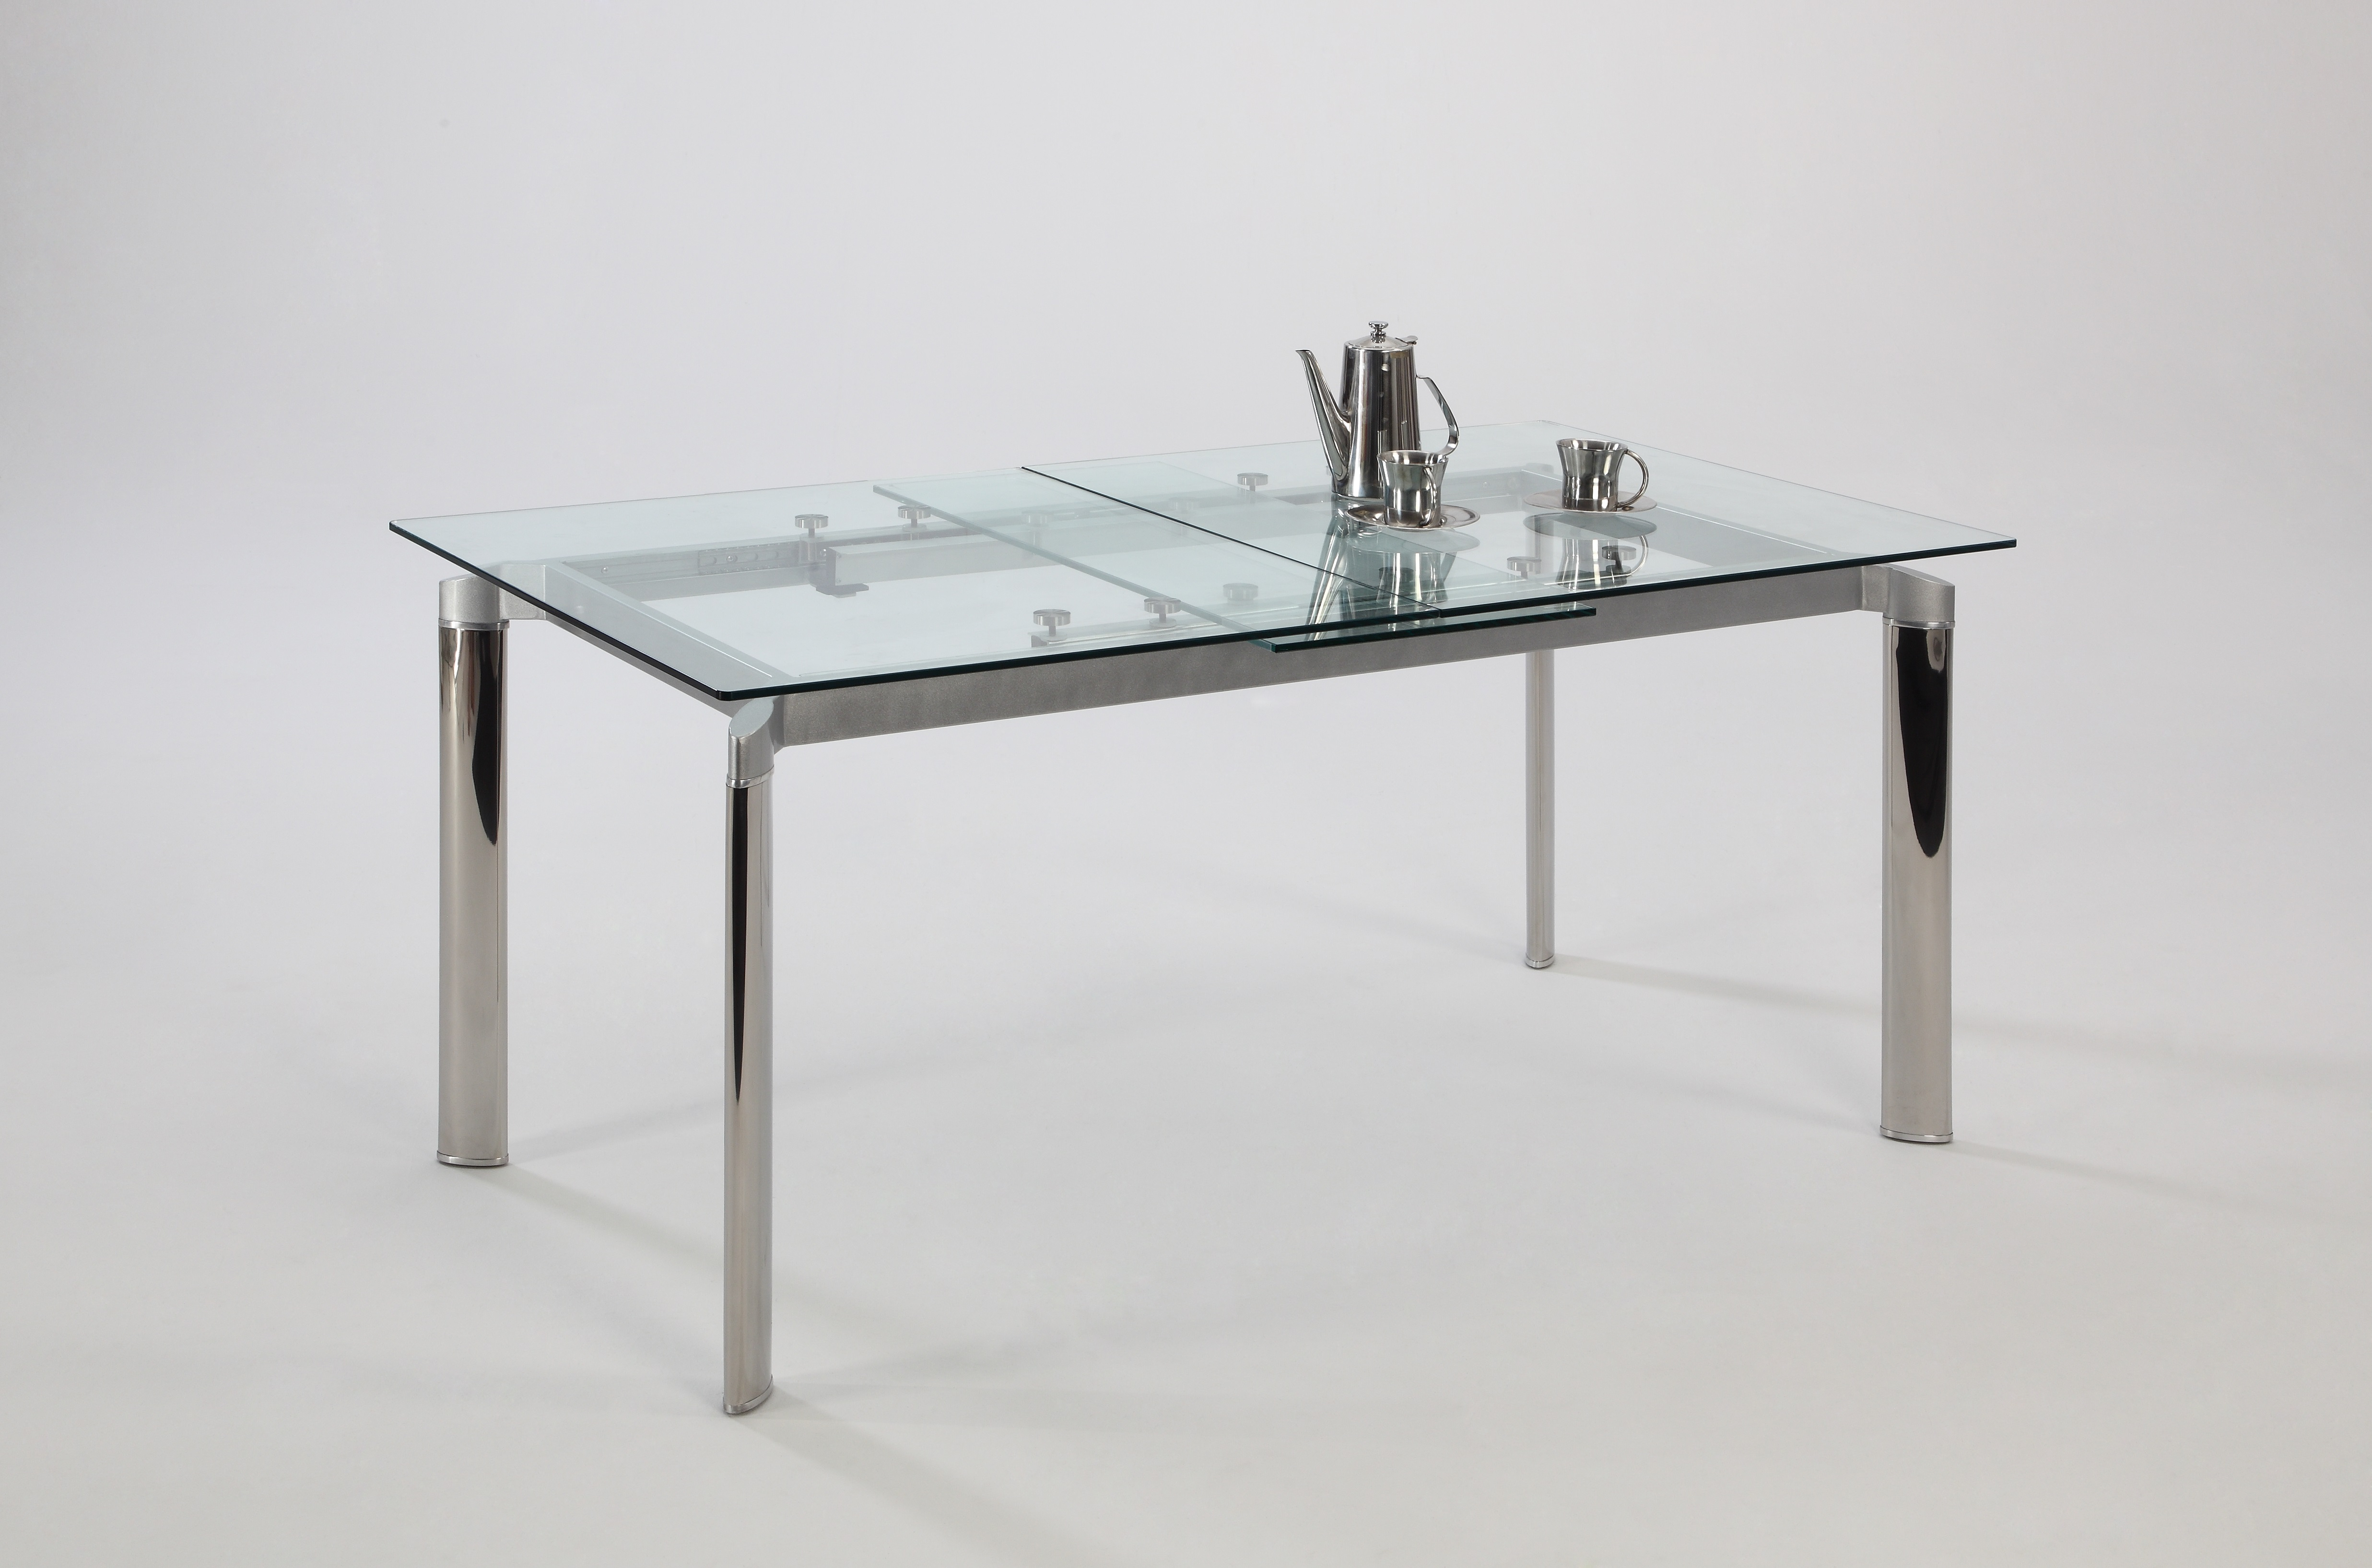 Contemporary Clear Glass and Chrome Extendable Dining  : chtara clear glass dining table02 from www.primeclassicdesign.com size 4946 x 3270 jpeg 1745kB